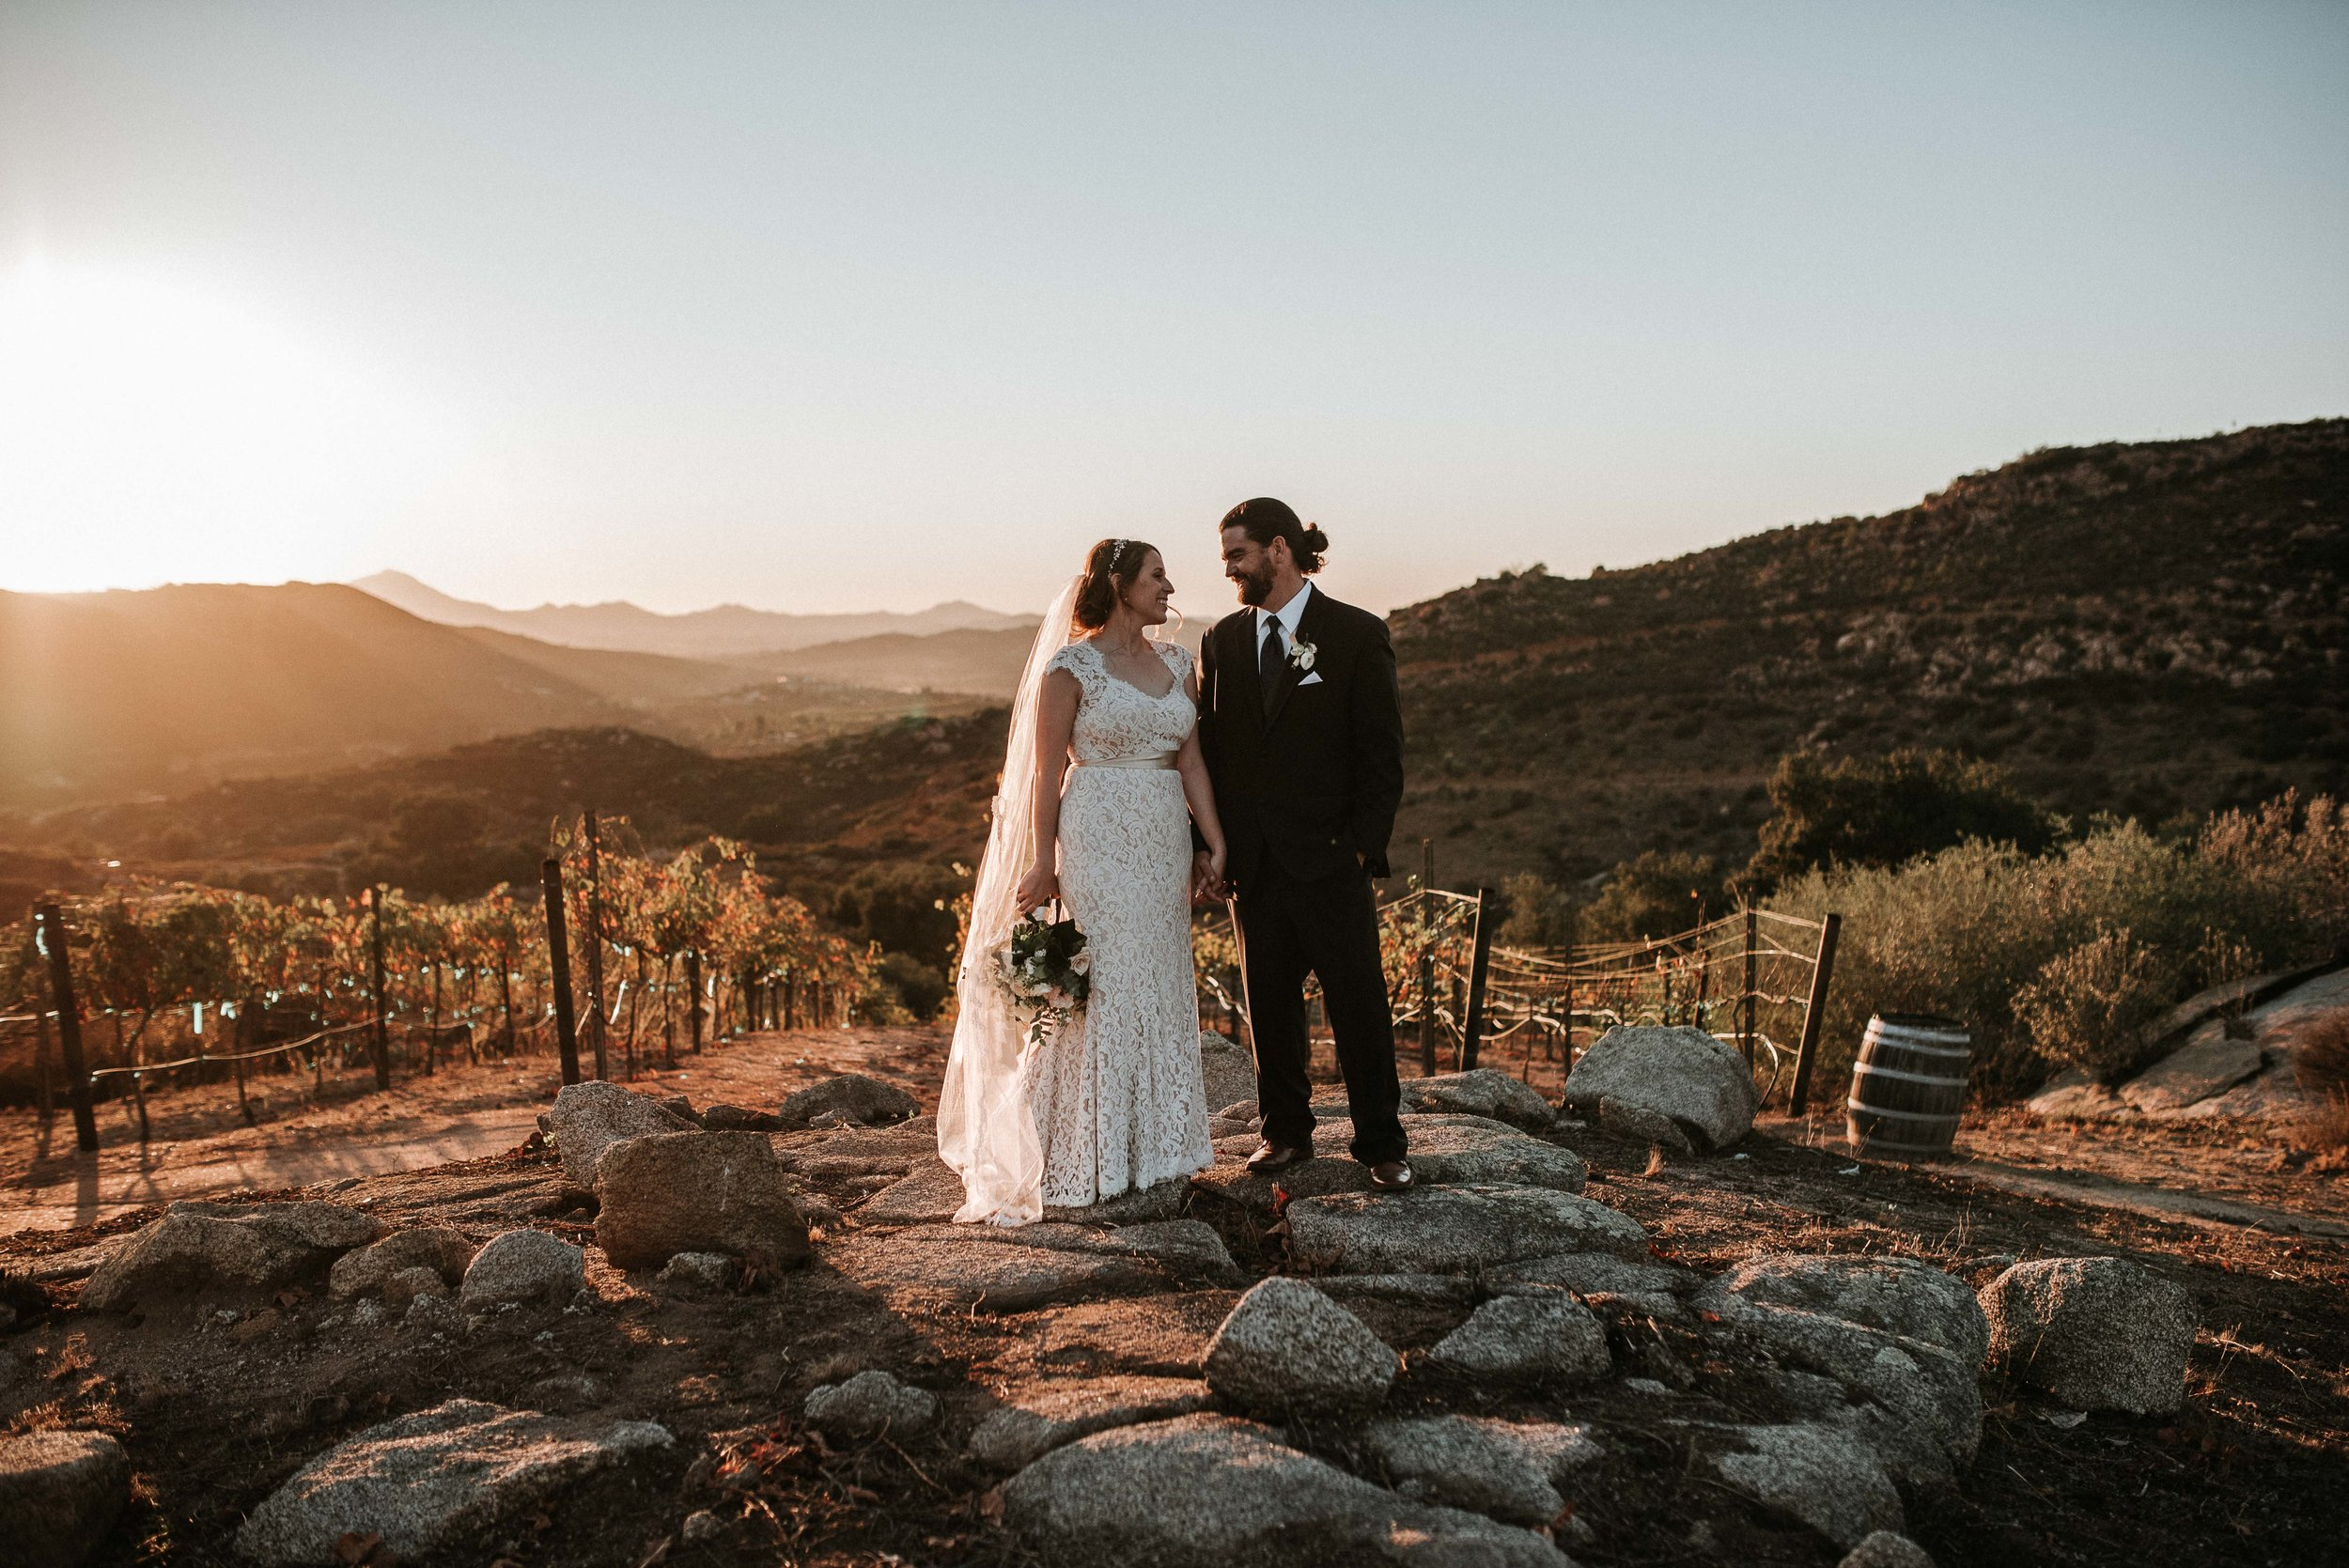 Milagro Farms   This is hands down my favorite wedding venue in San Diego and it perfectly suited these two. They are adventures and love the outdoors which made Milagro Farms and Winery the perfect backdrop.   View Gallery